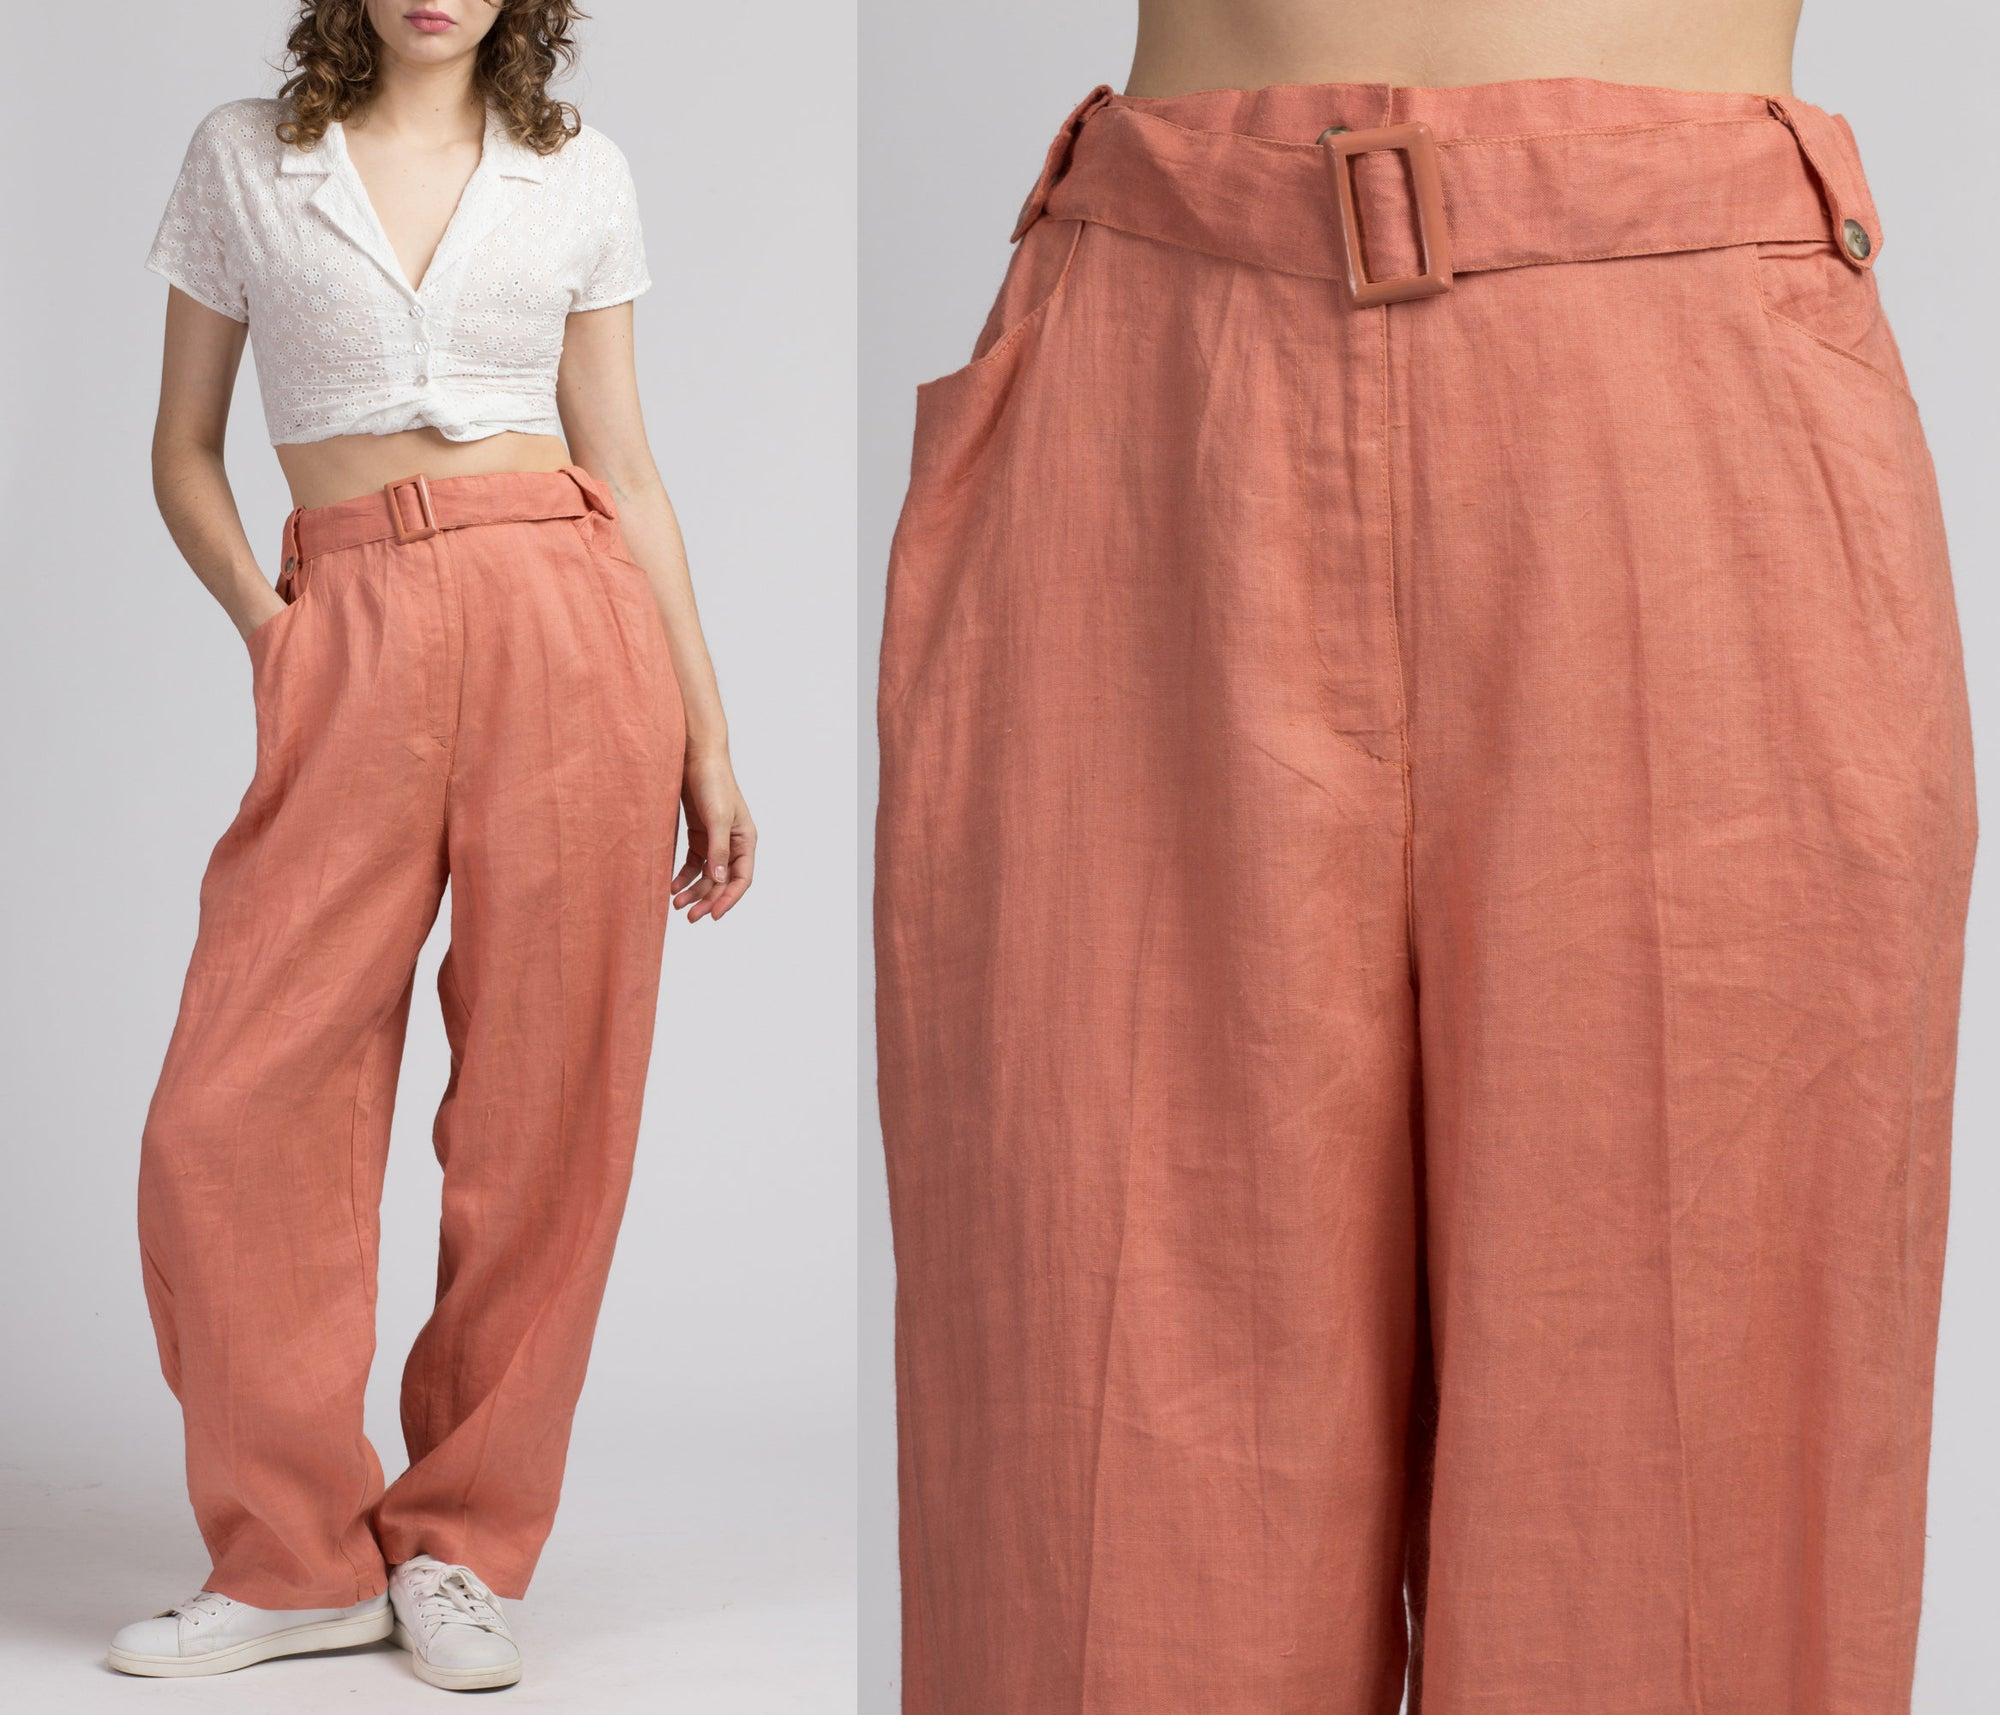 90s Coral Belted Ramie Pants - Large